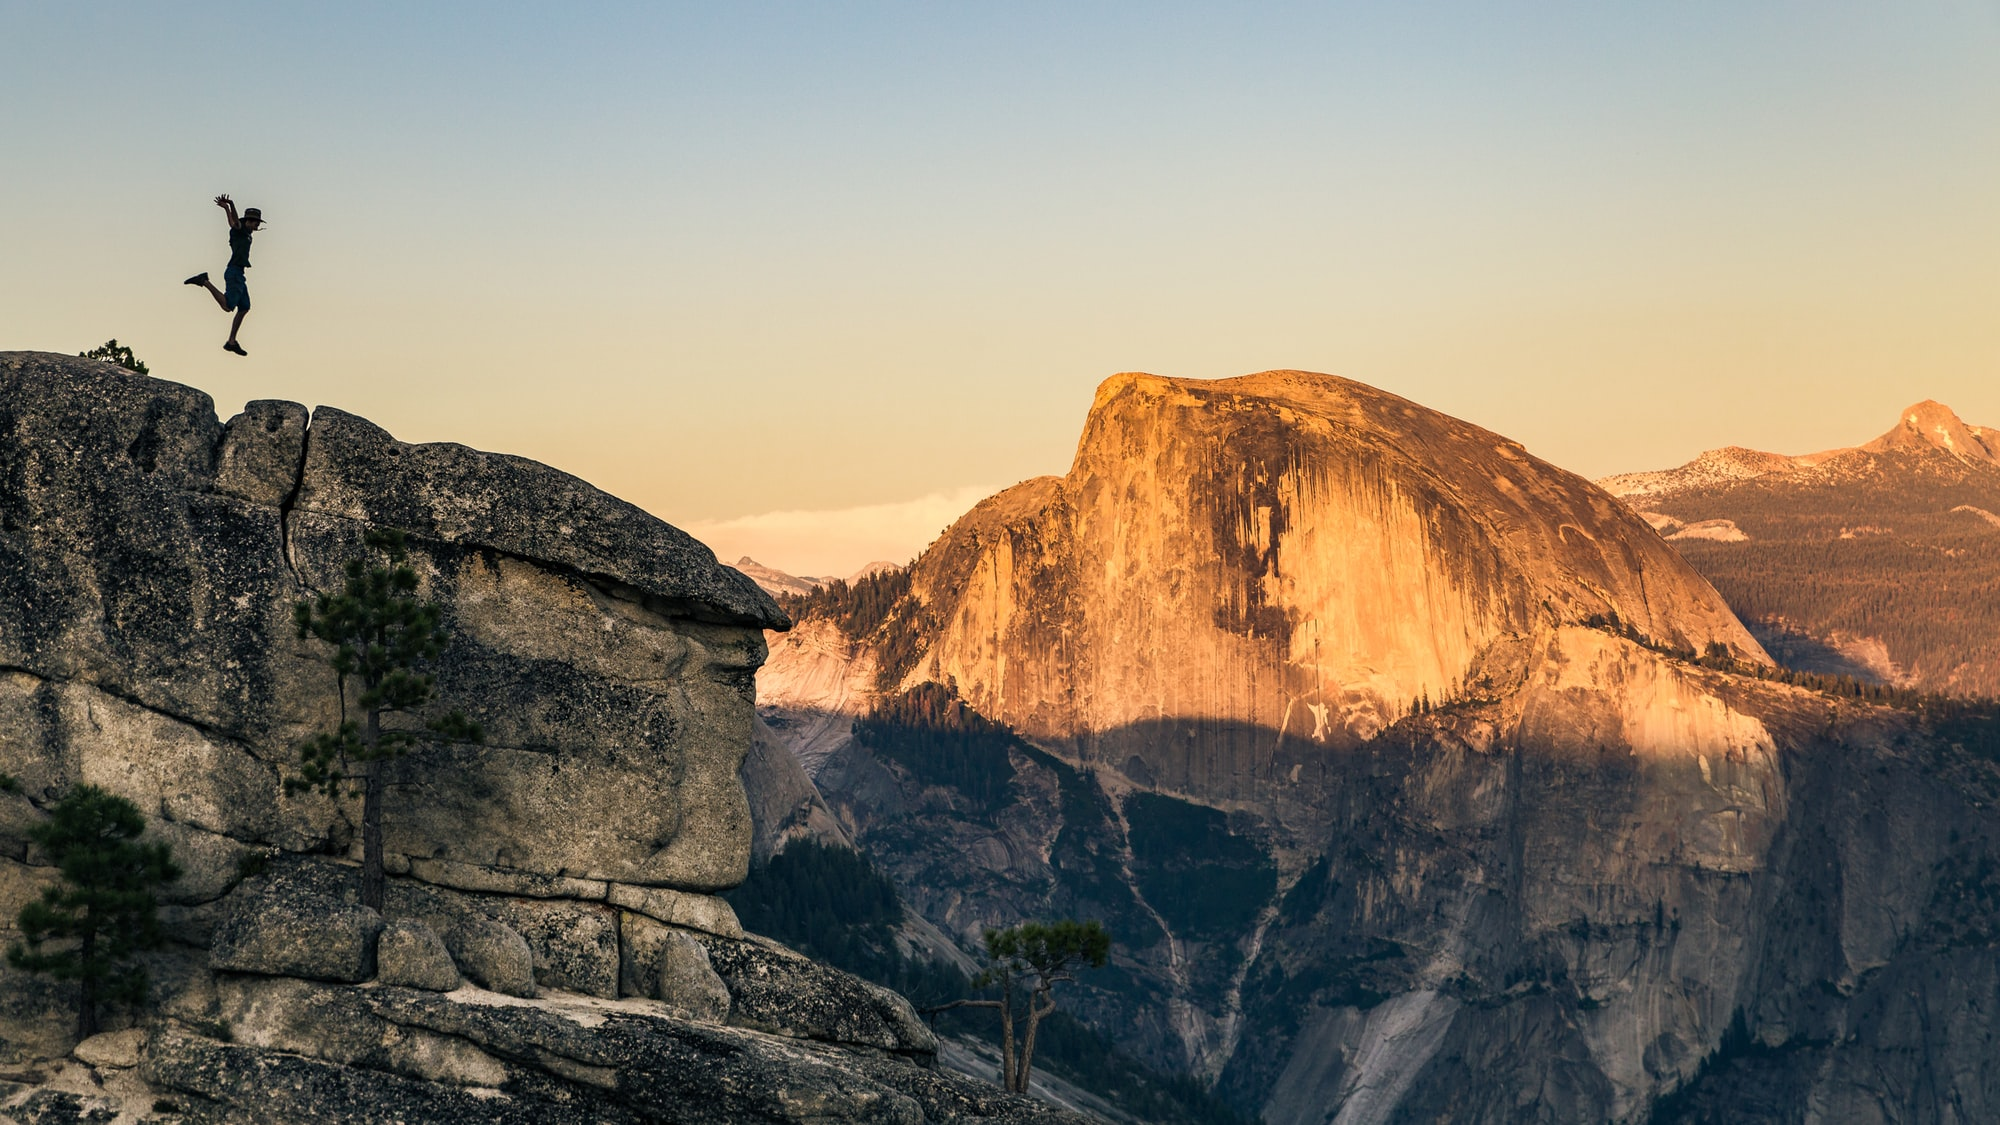 Silhouette of a man jumping on the edge of a cliff in front of the Half Dome of Yosemite National Park.